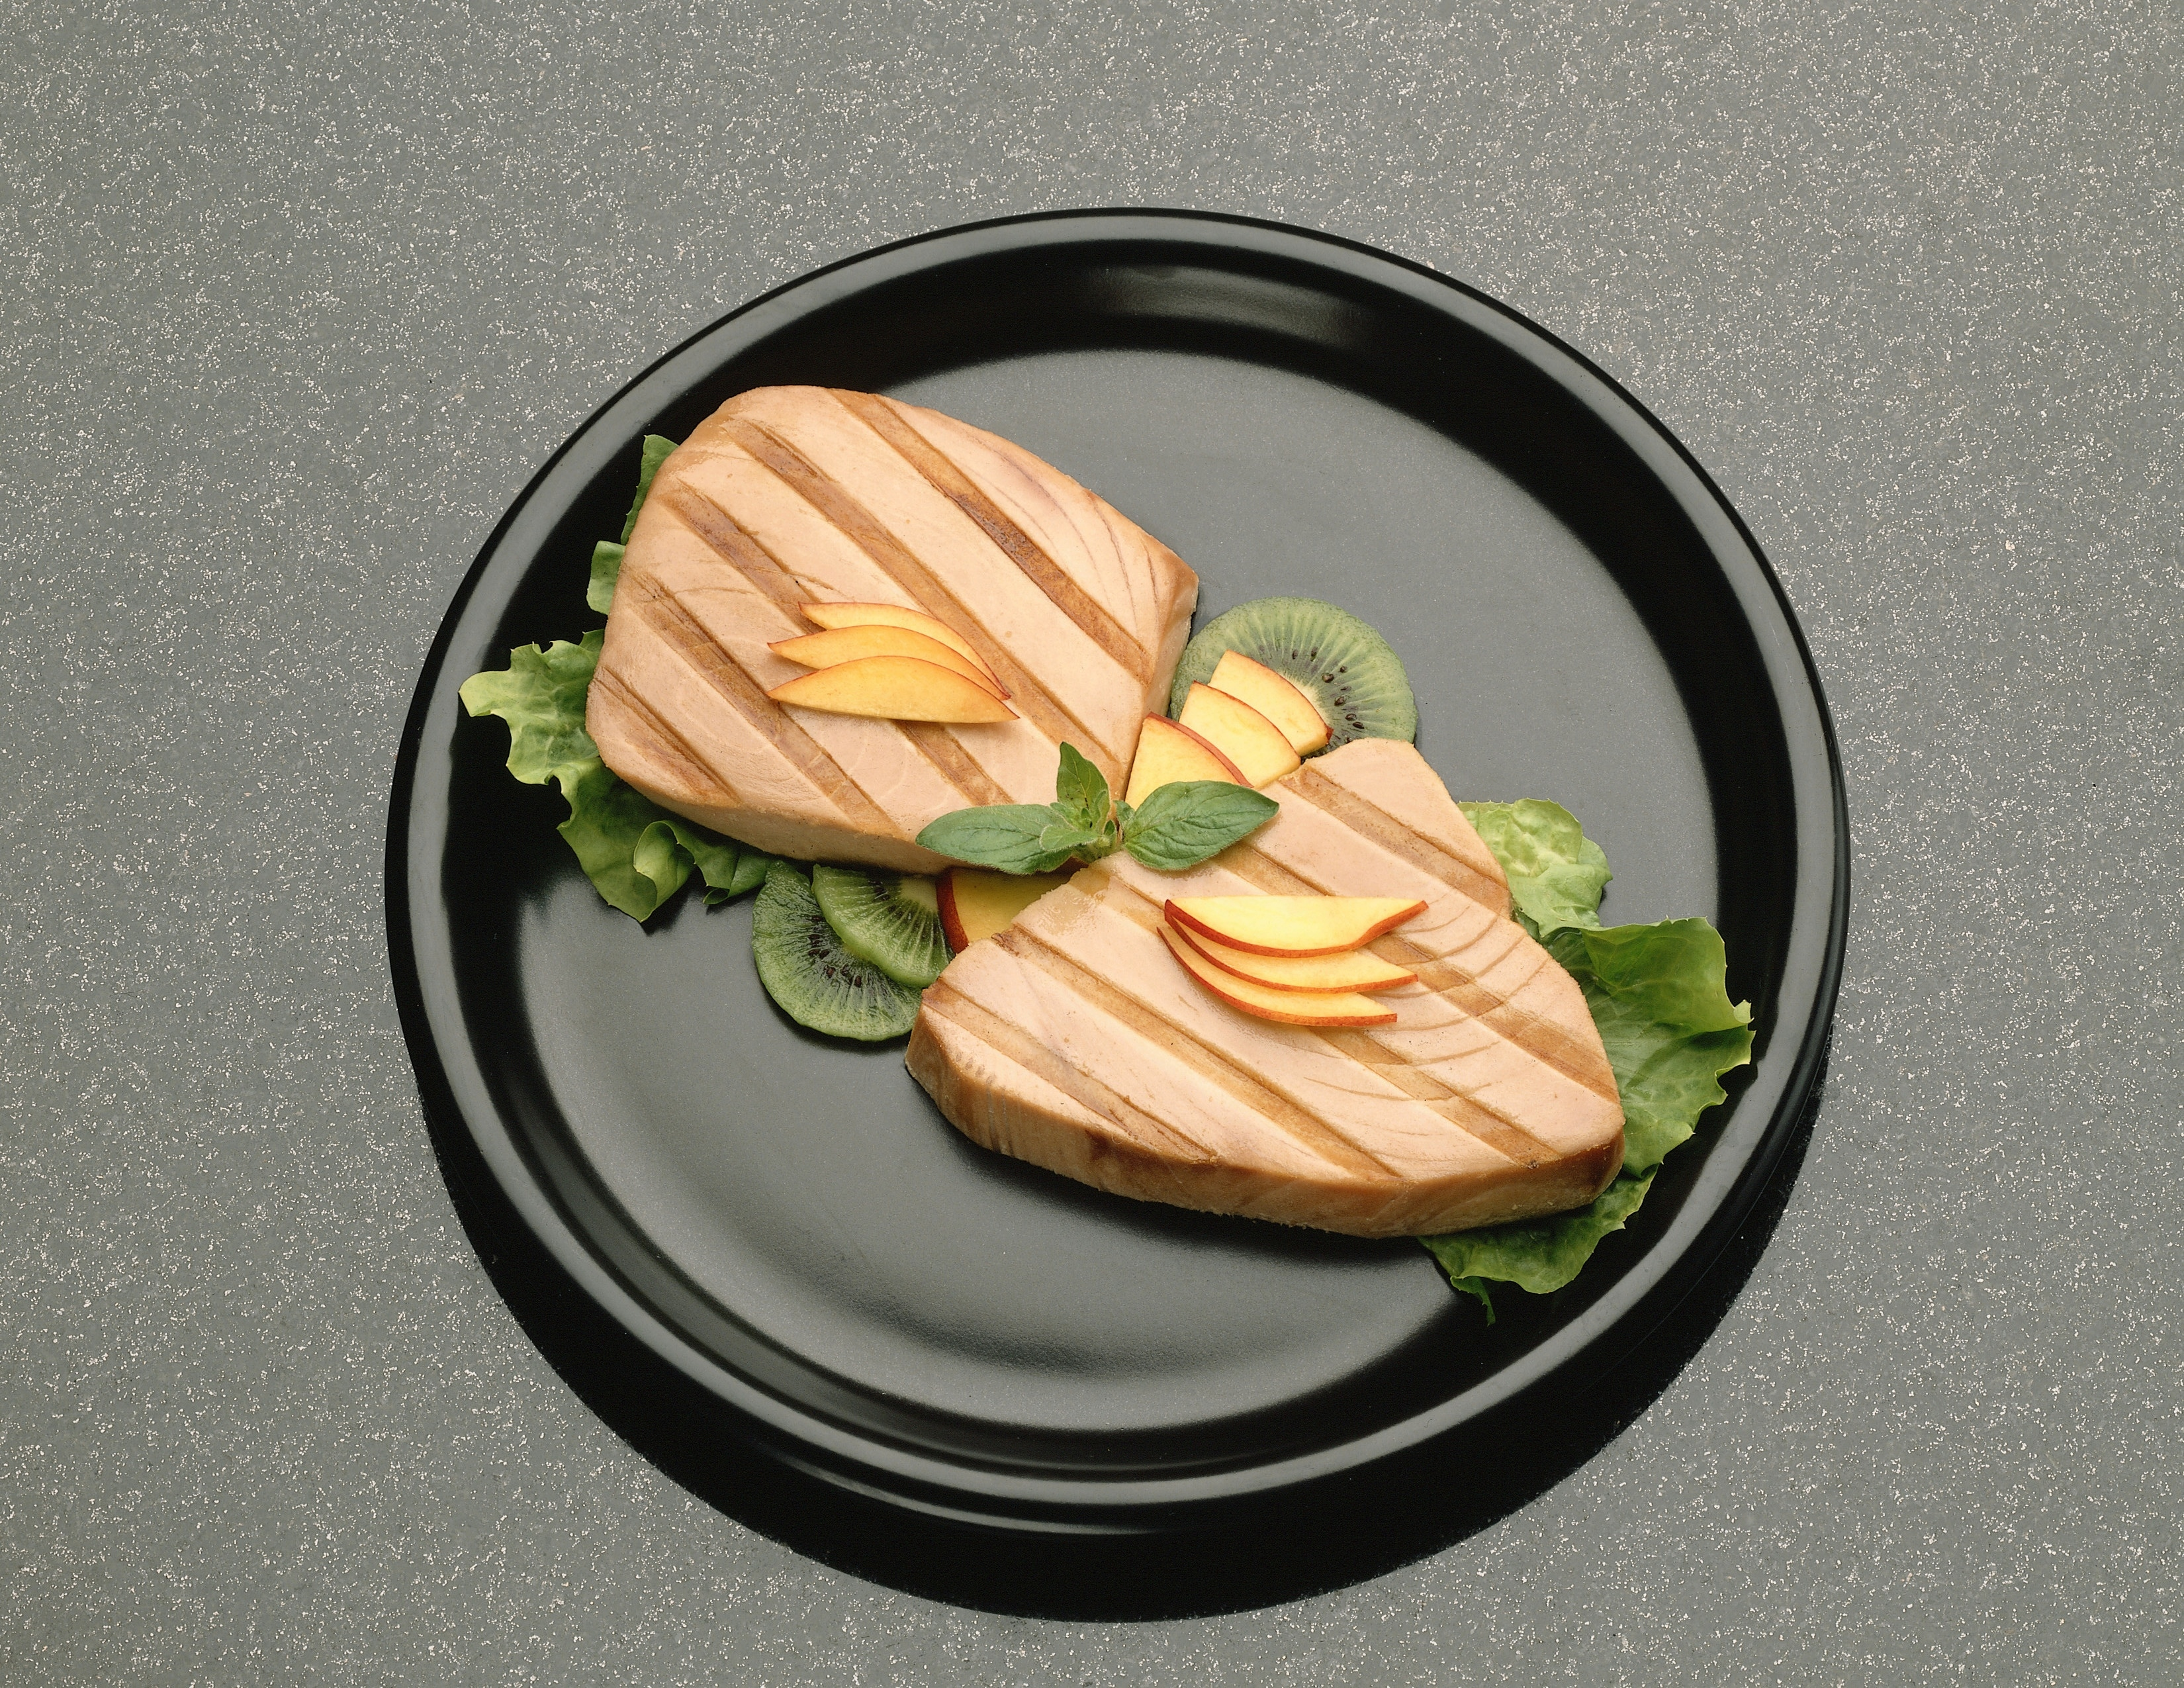 Tuna contains approximately the same amount of protein per serving as beef.